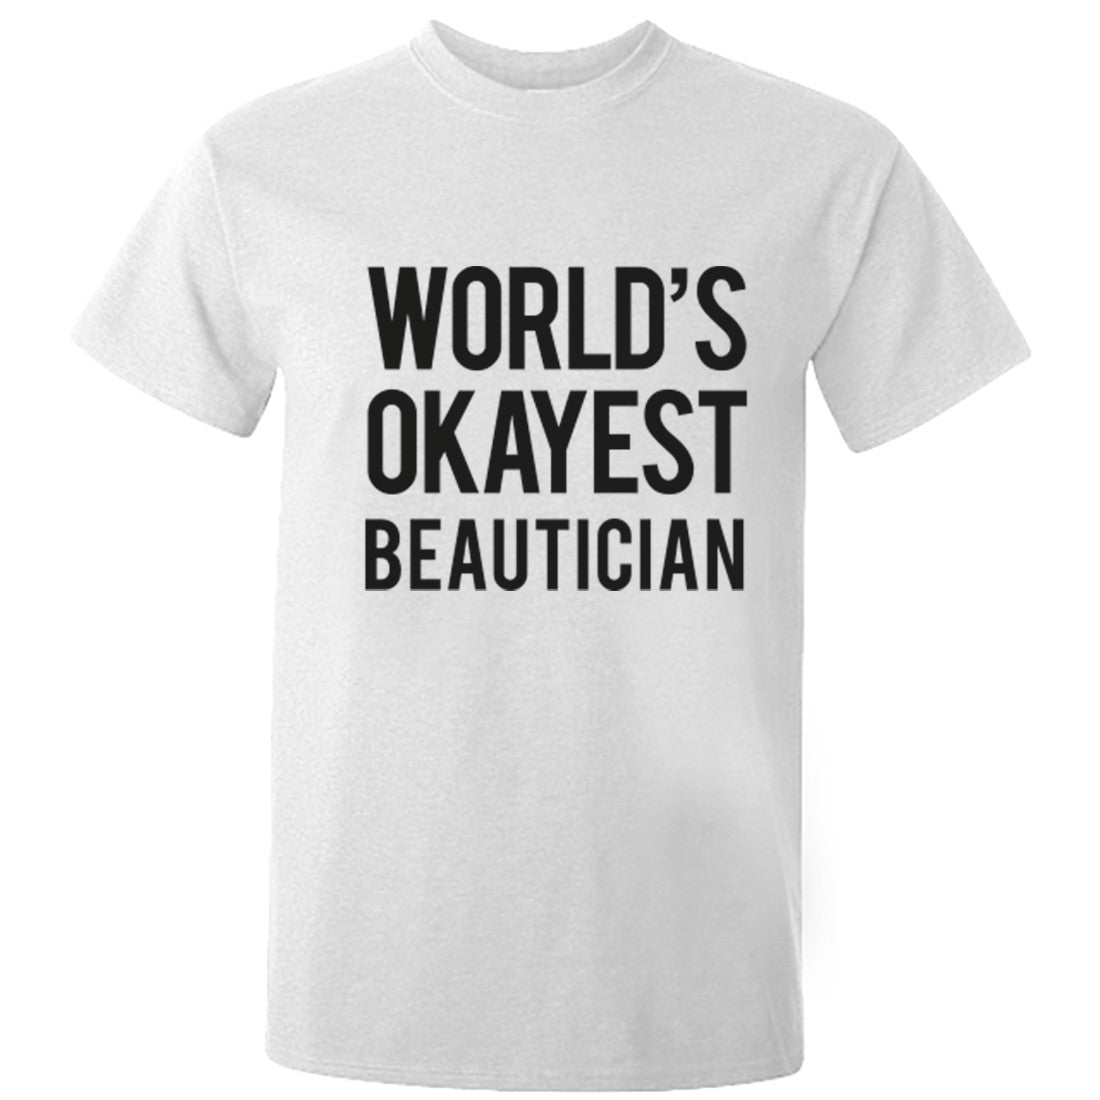 Worlds Okayest Beautician Unisex Fit T-Shirt K0497 - Illustrated Identity Ltd.